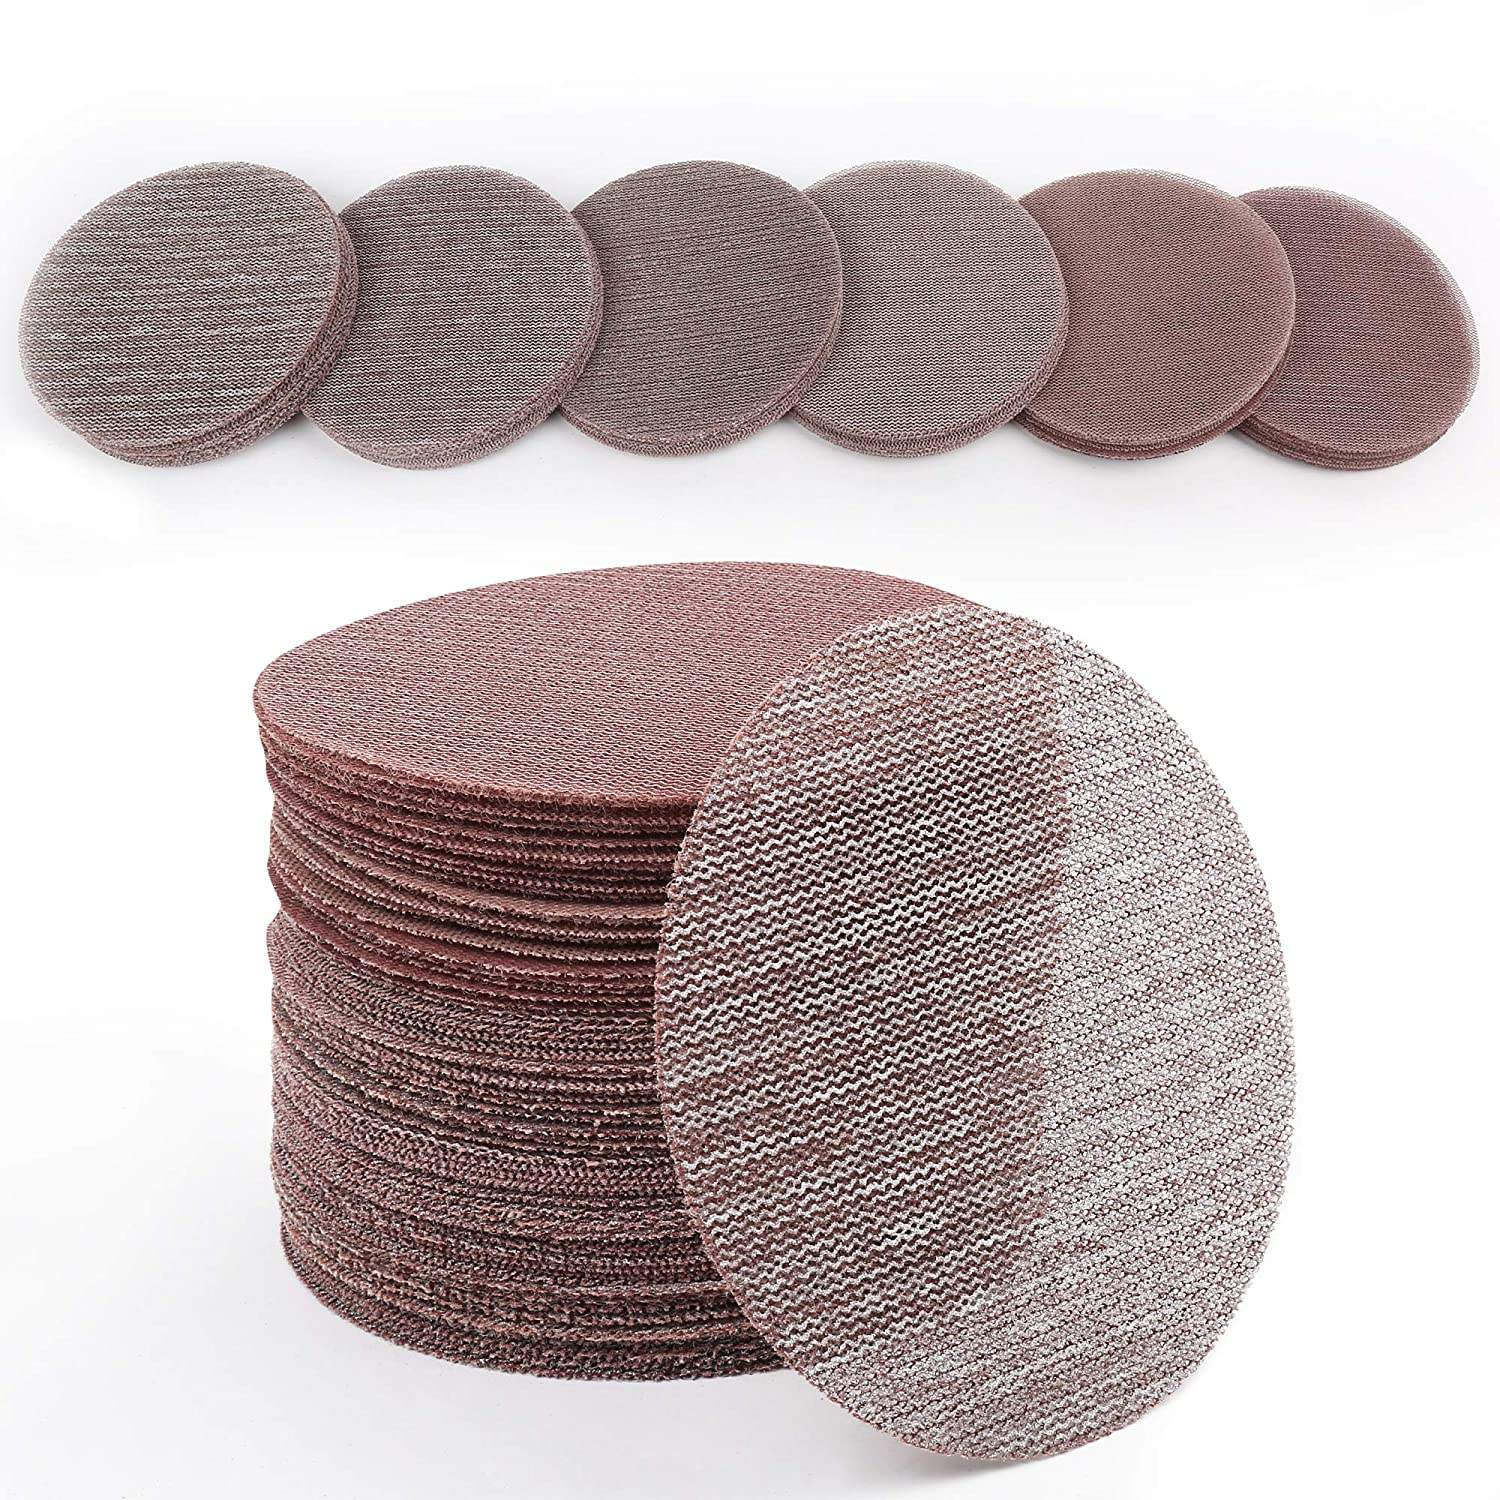 Customized 5 Inch 125mm Hook and Loop Mesh Sanding Discs, 60PCS Aluminum Oxide 60-320 Grit Abrasive Mesh Disc Sandpaper